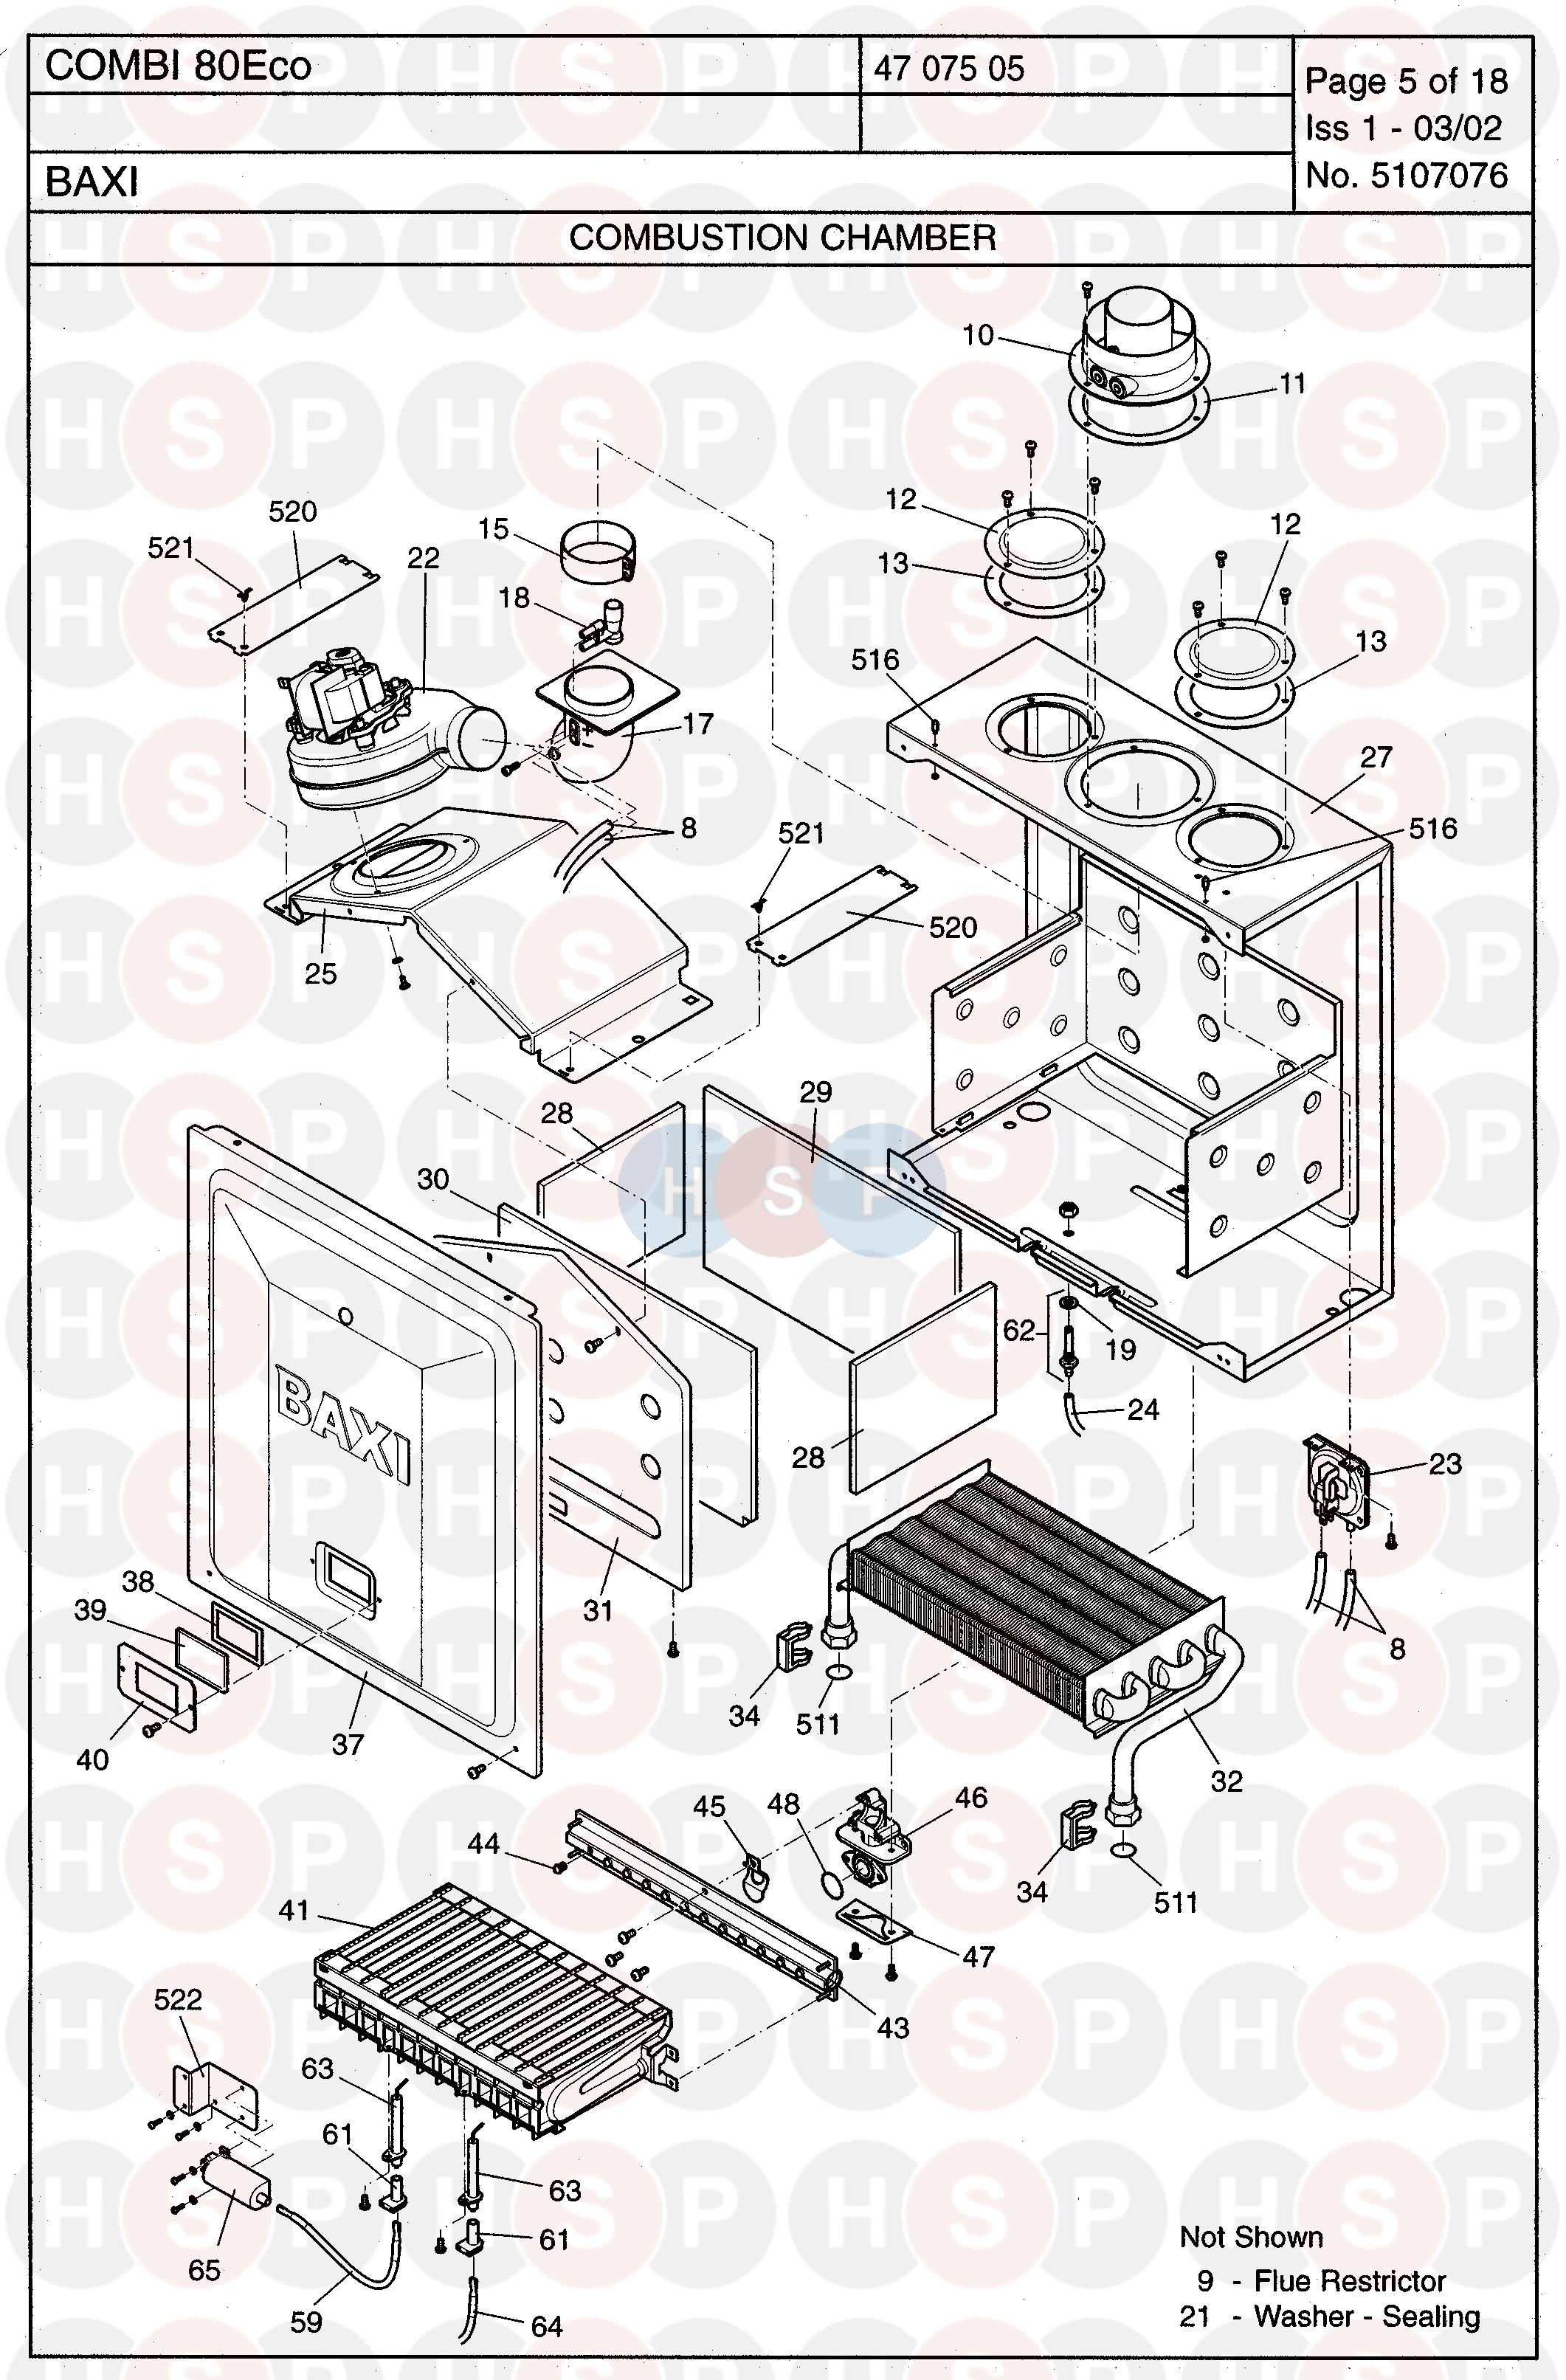 baxi combi 80 eco  combustion chamber  diagram